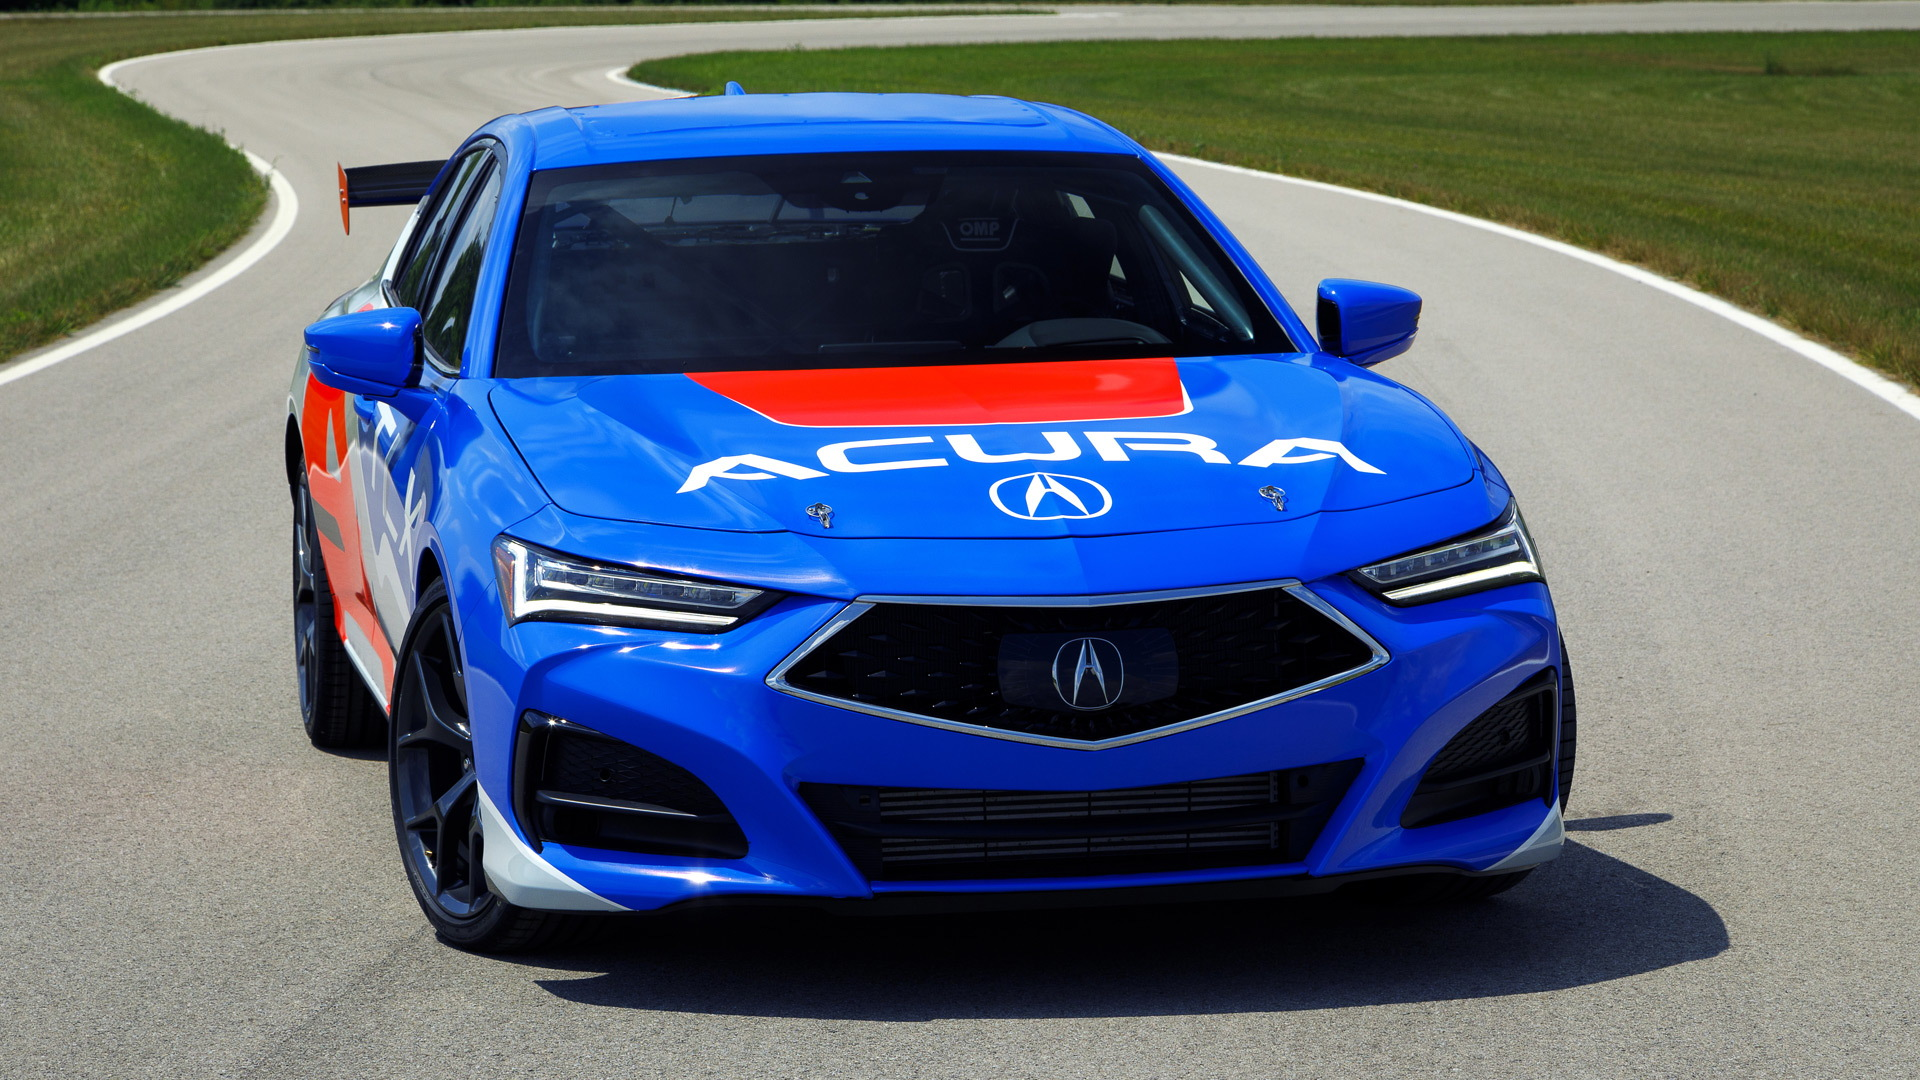 2021 Acura TLX race car to tackle 2020 Pikes Peak International Hill Climb